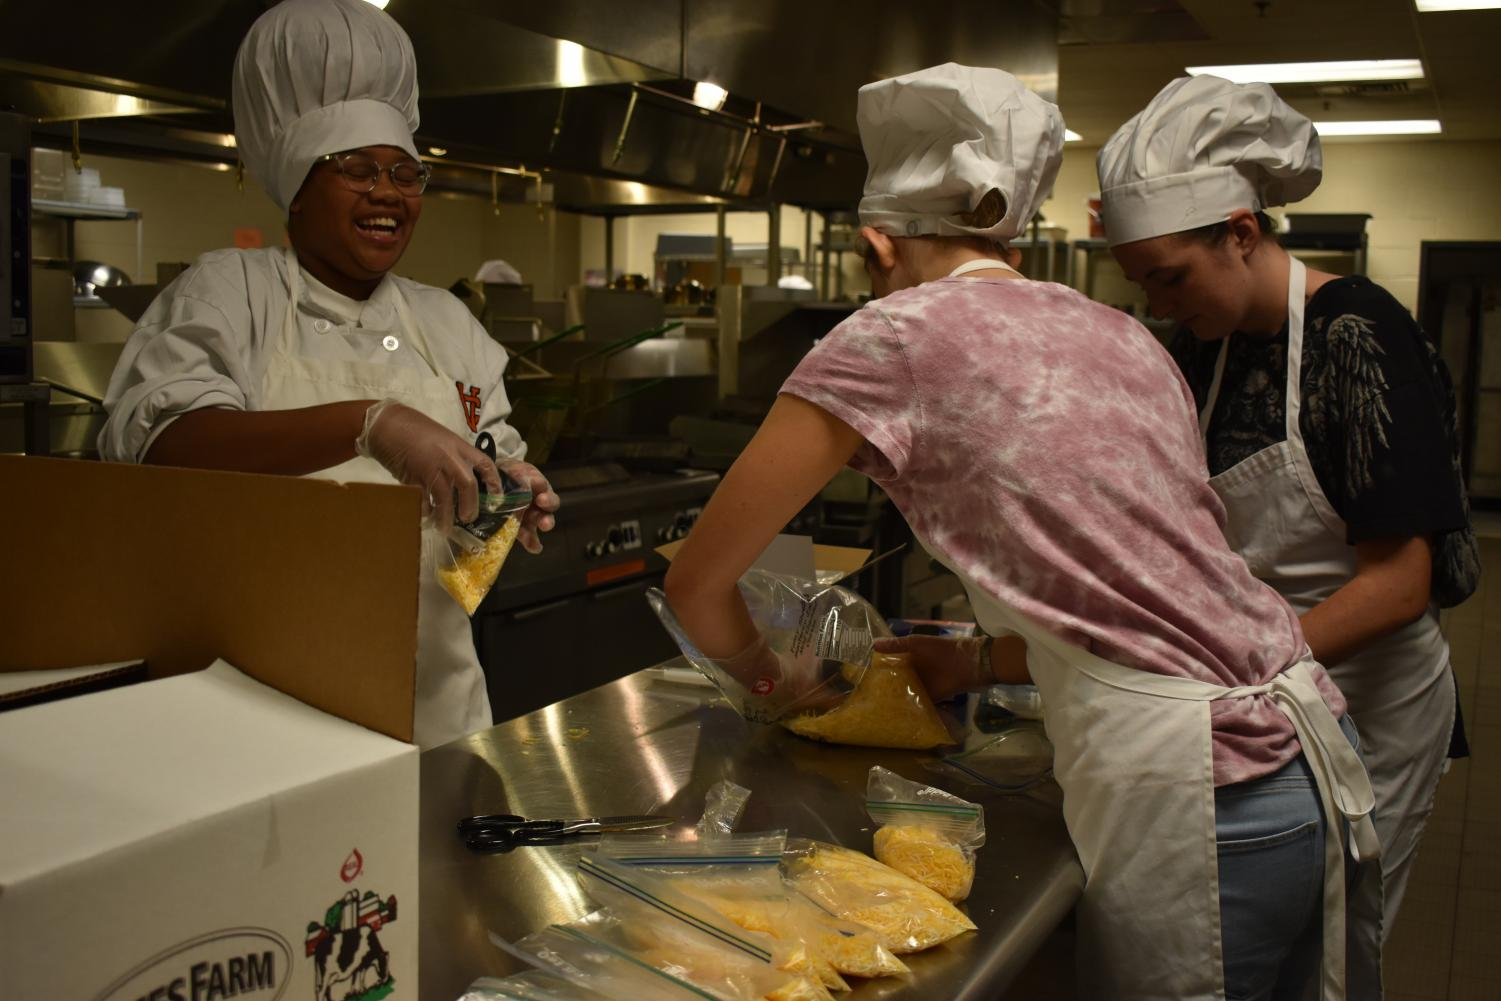 """FCCLA members meet in the culinary room Monday afternoons, improving their culinary schools and creating new relationships. Students appear thrilled as they prepare components of the enchilada meal. """"Everyone in FCCLA is super nice,"""" sophomore Kiara Kisor said."""